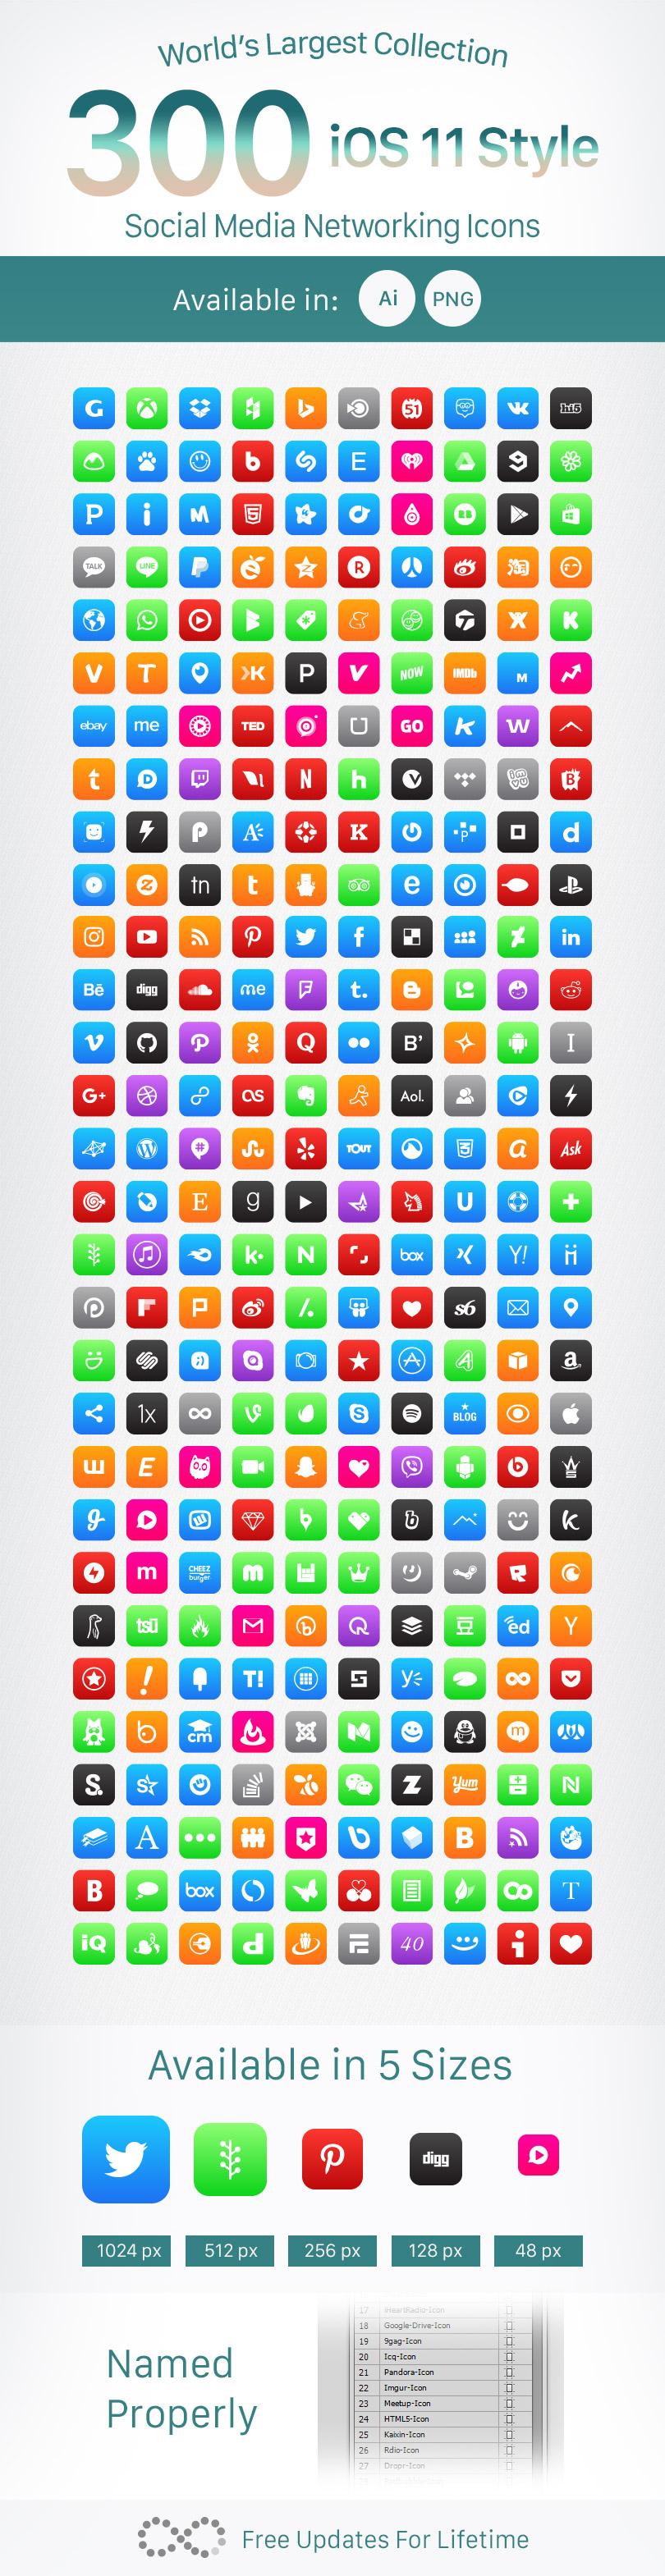 300-iOS-Style-Social-Media-Icons-2018-Vector-Ai-PNGs-Free-&-Premium